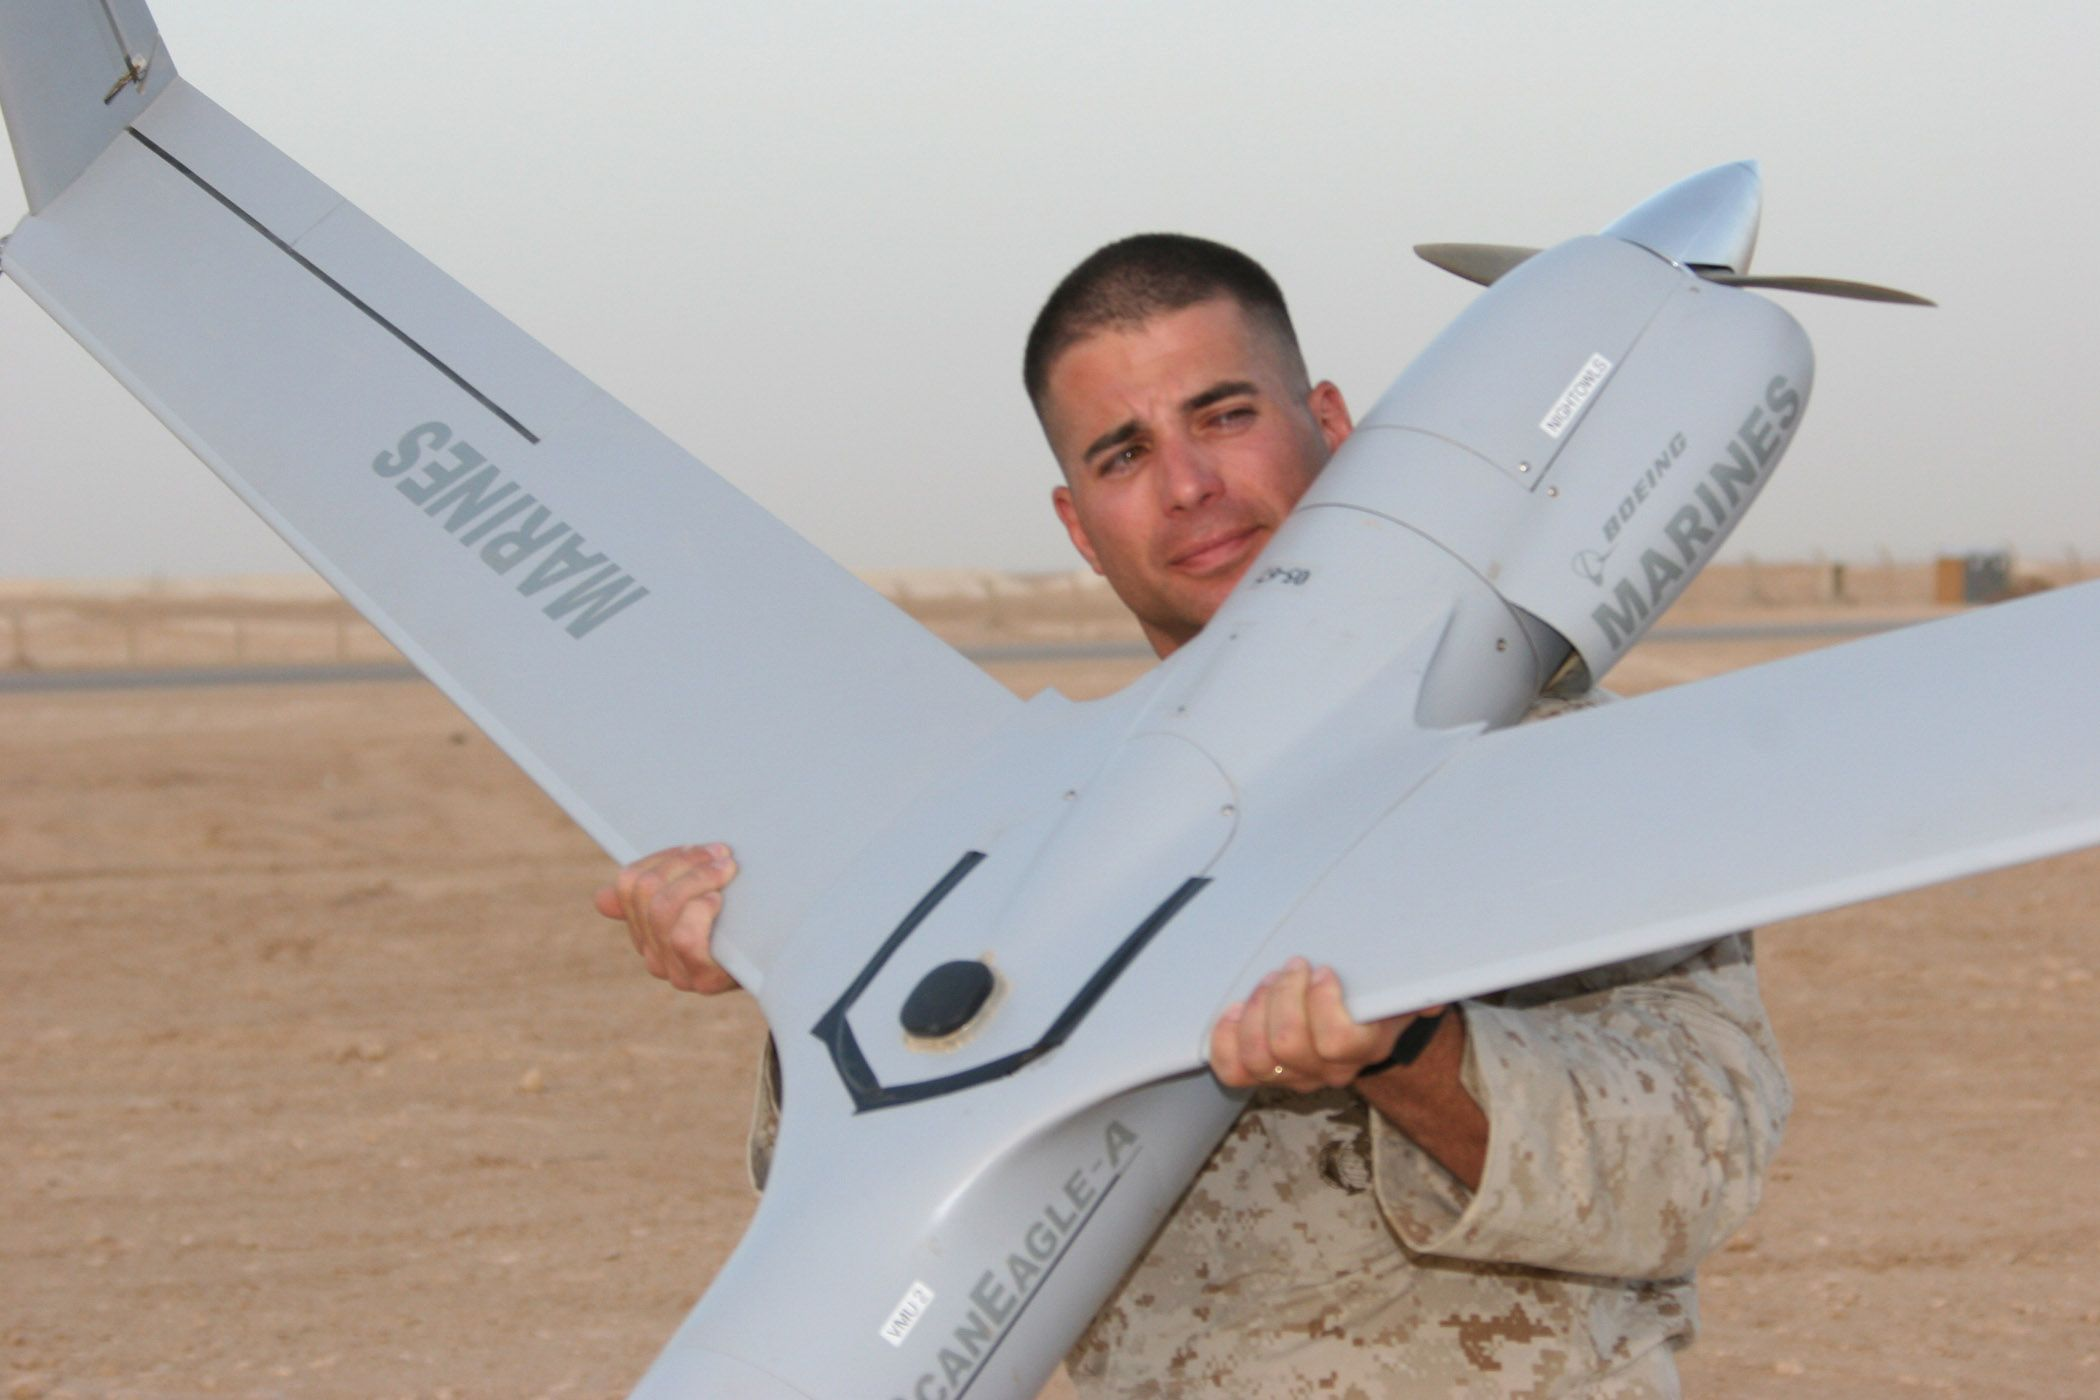 DHS Embraces Small Spy Drones Slated to Begin New Testing Program